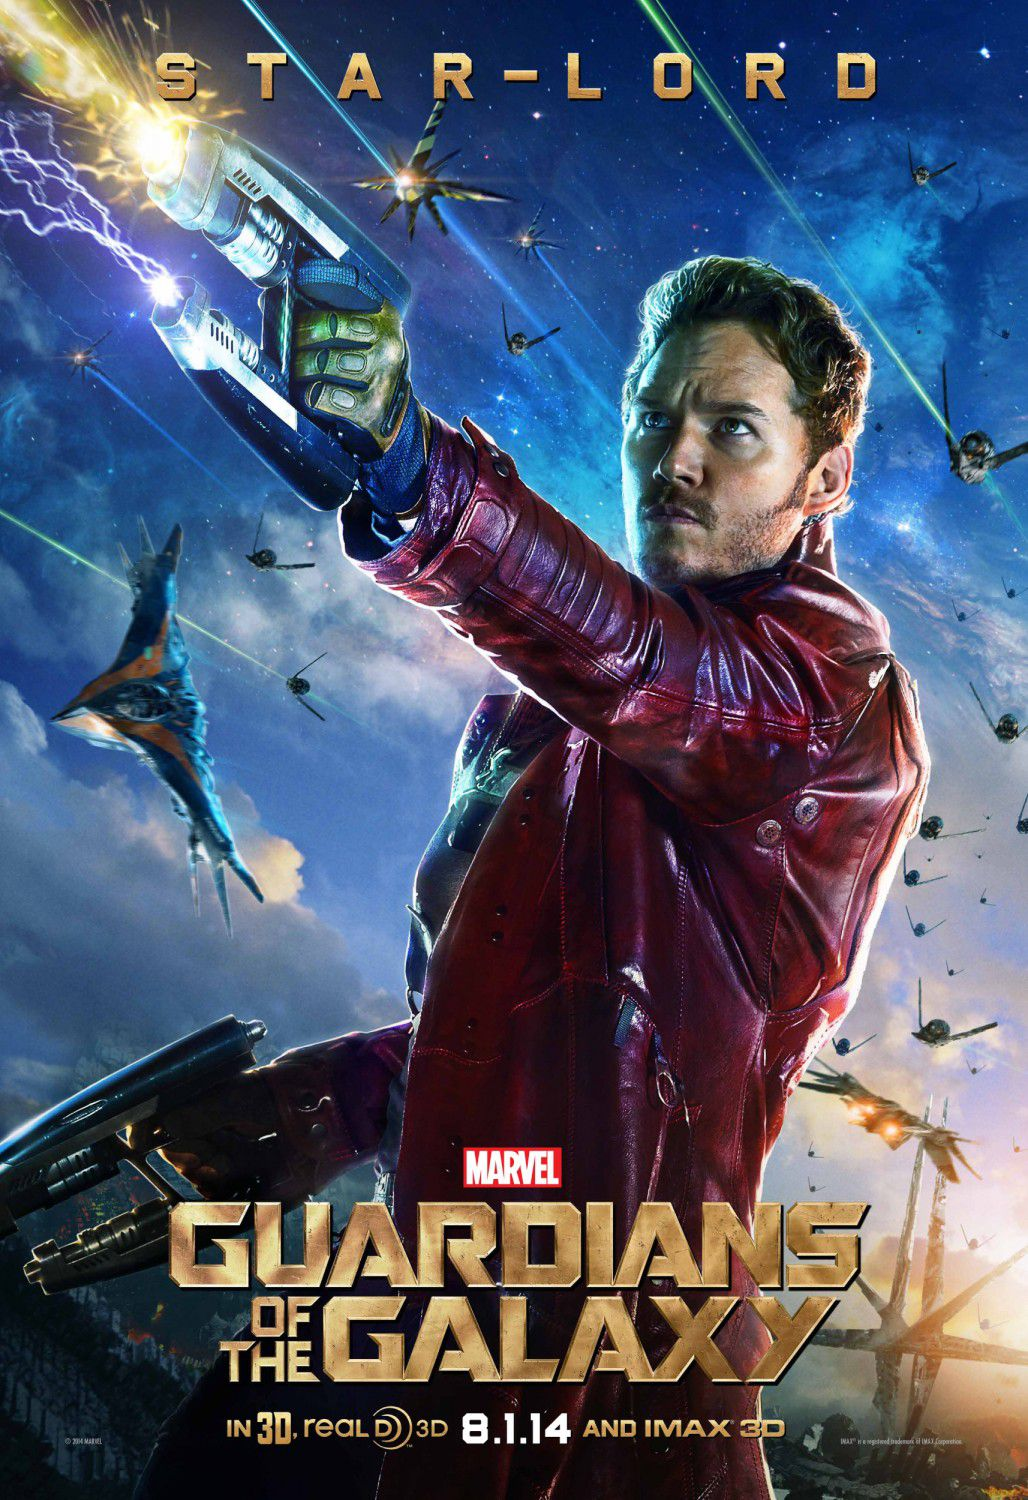 Star-Lord - Chris Pratt